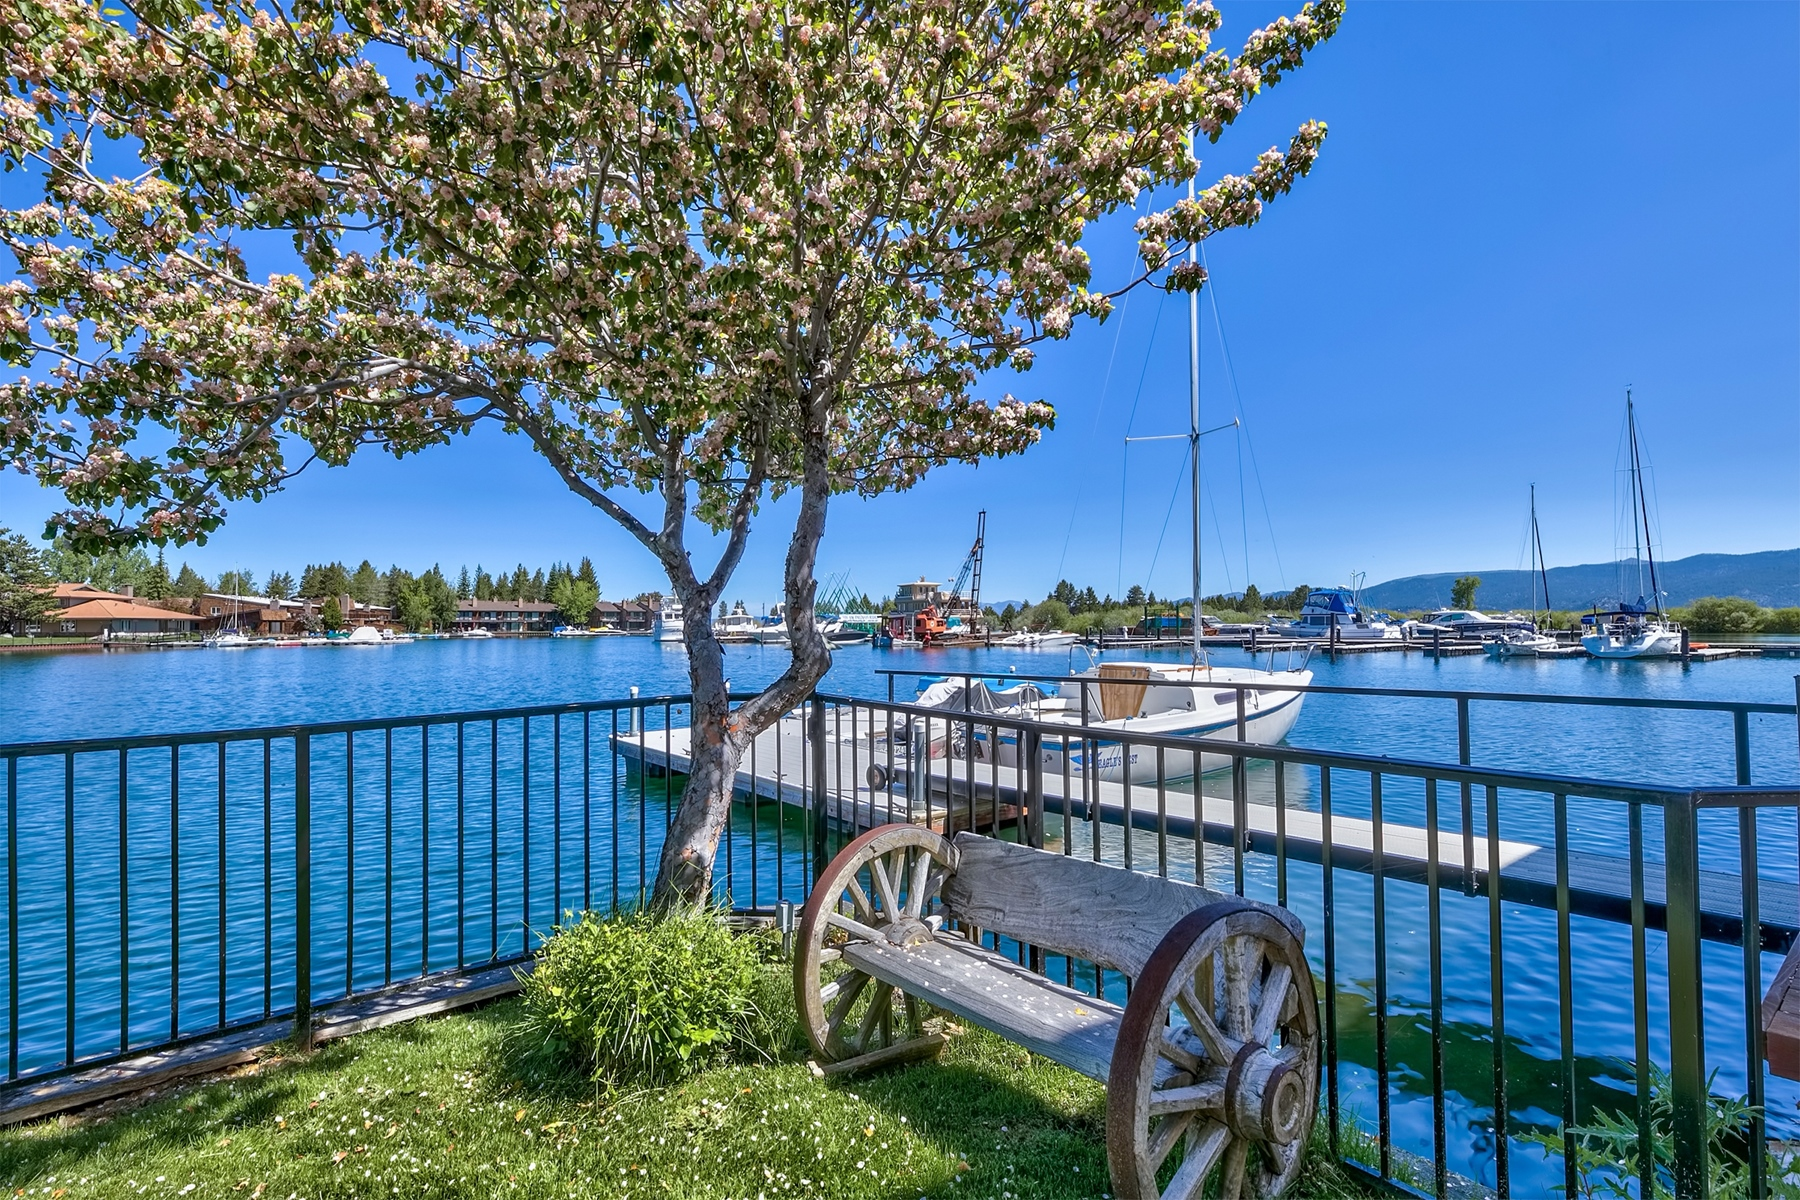 Property for Active at 439 Ala Wai #135 Blvd, South Lake Tahoe CA 96150 439 Ala Wai #135 Blvd South Lake Tahoe, California 96150 United States